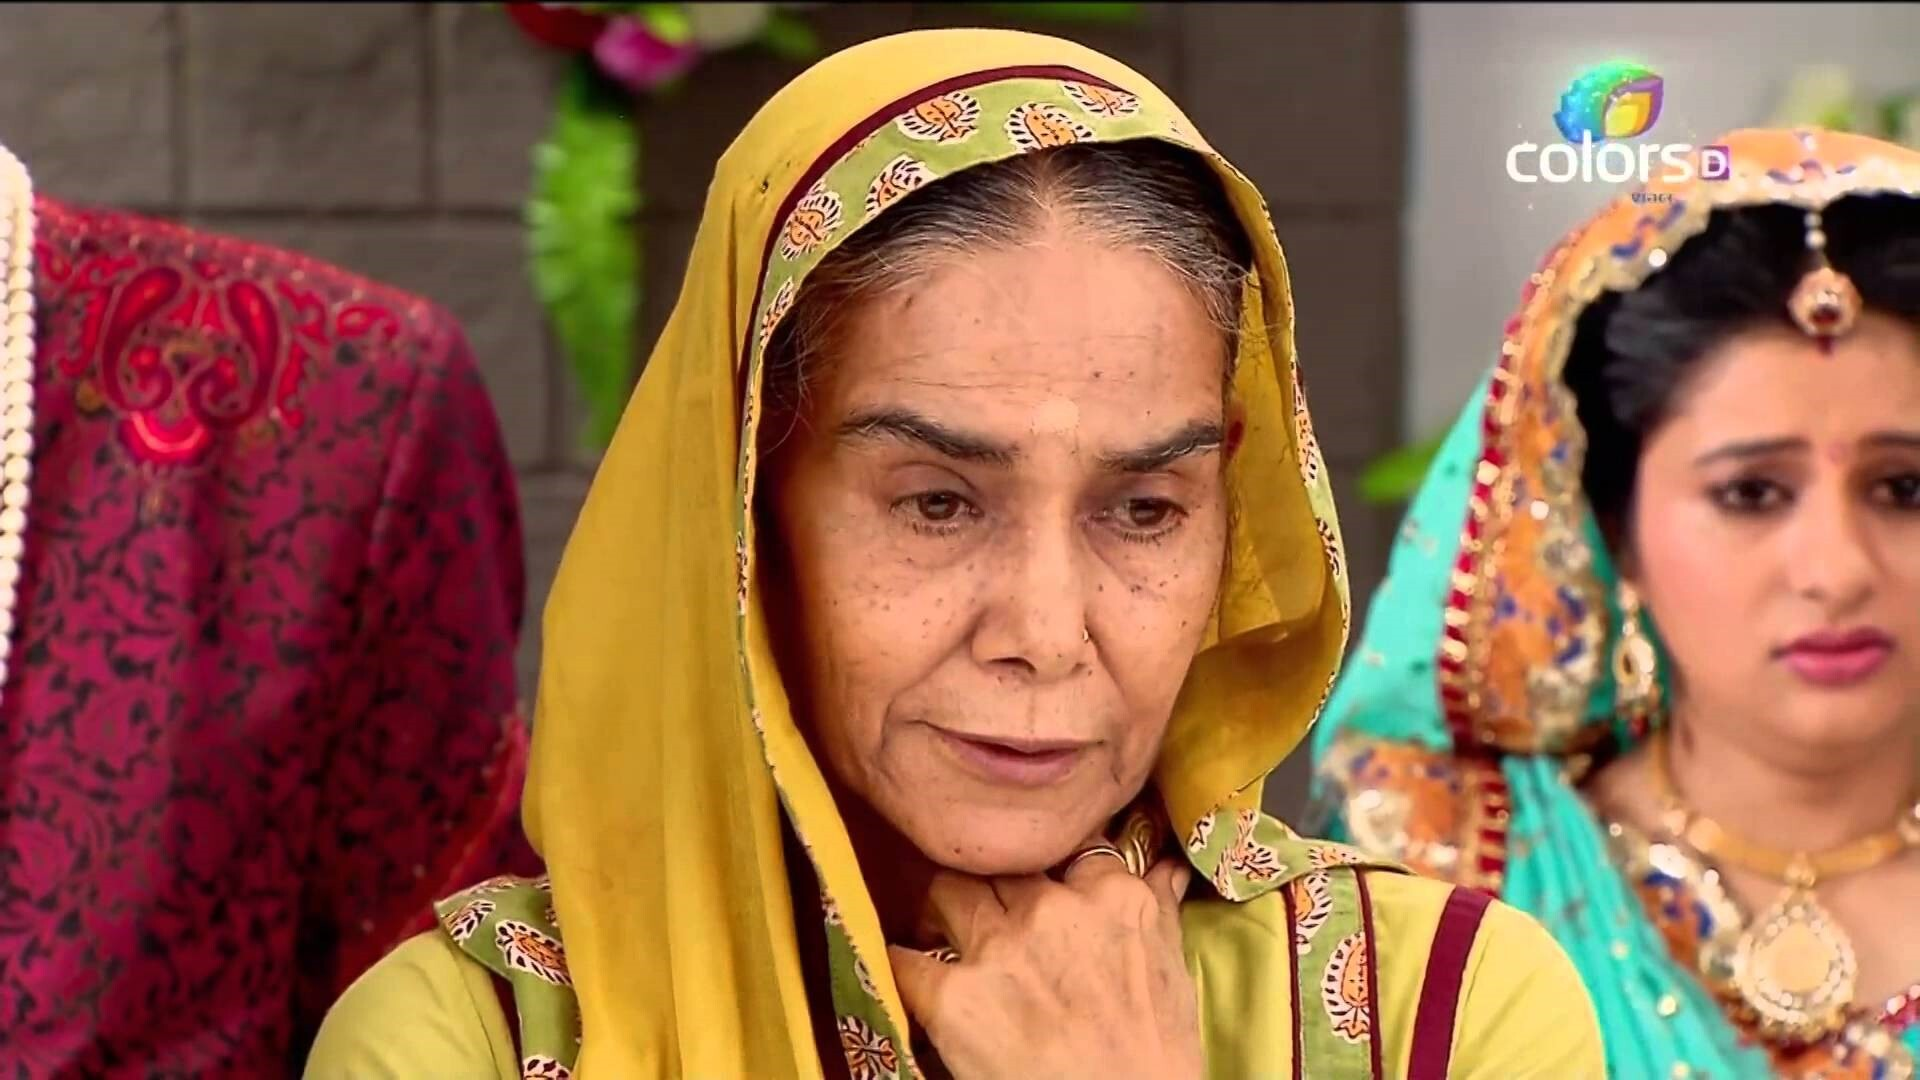 Balika Vadhu Hd Wallpapers Images Pictures Photos Download